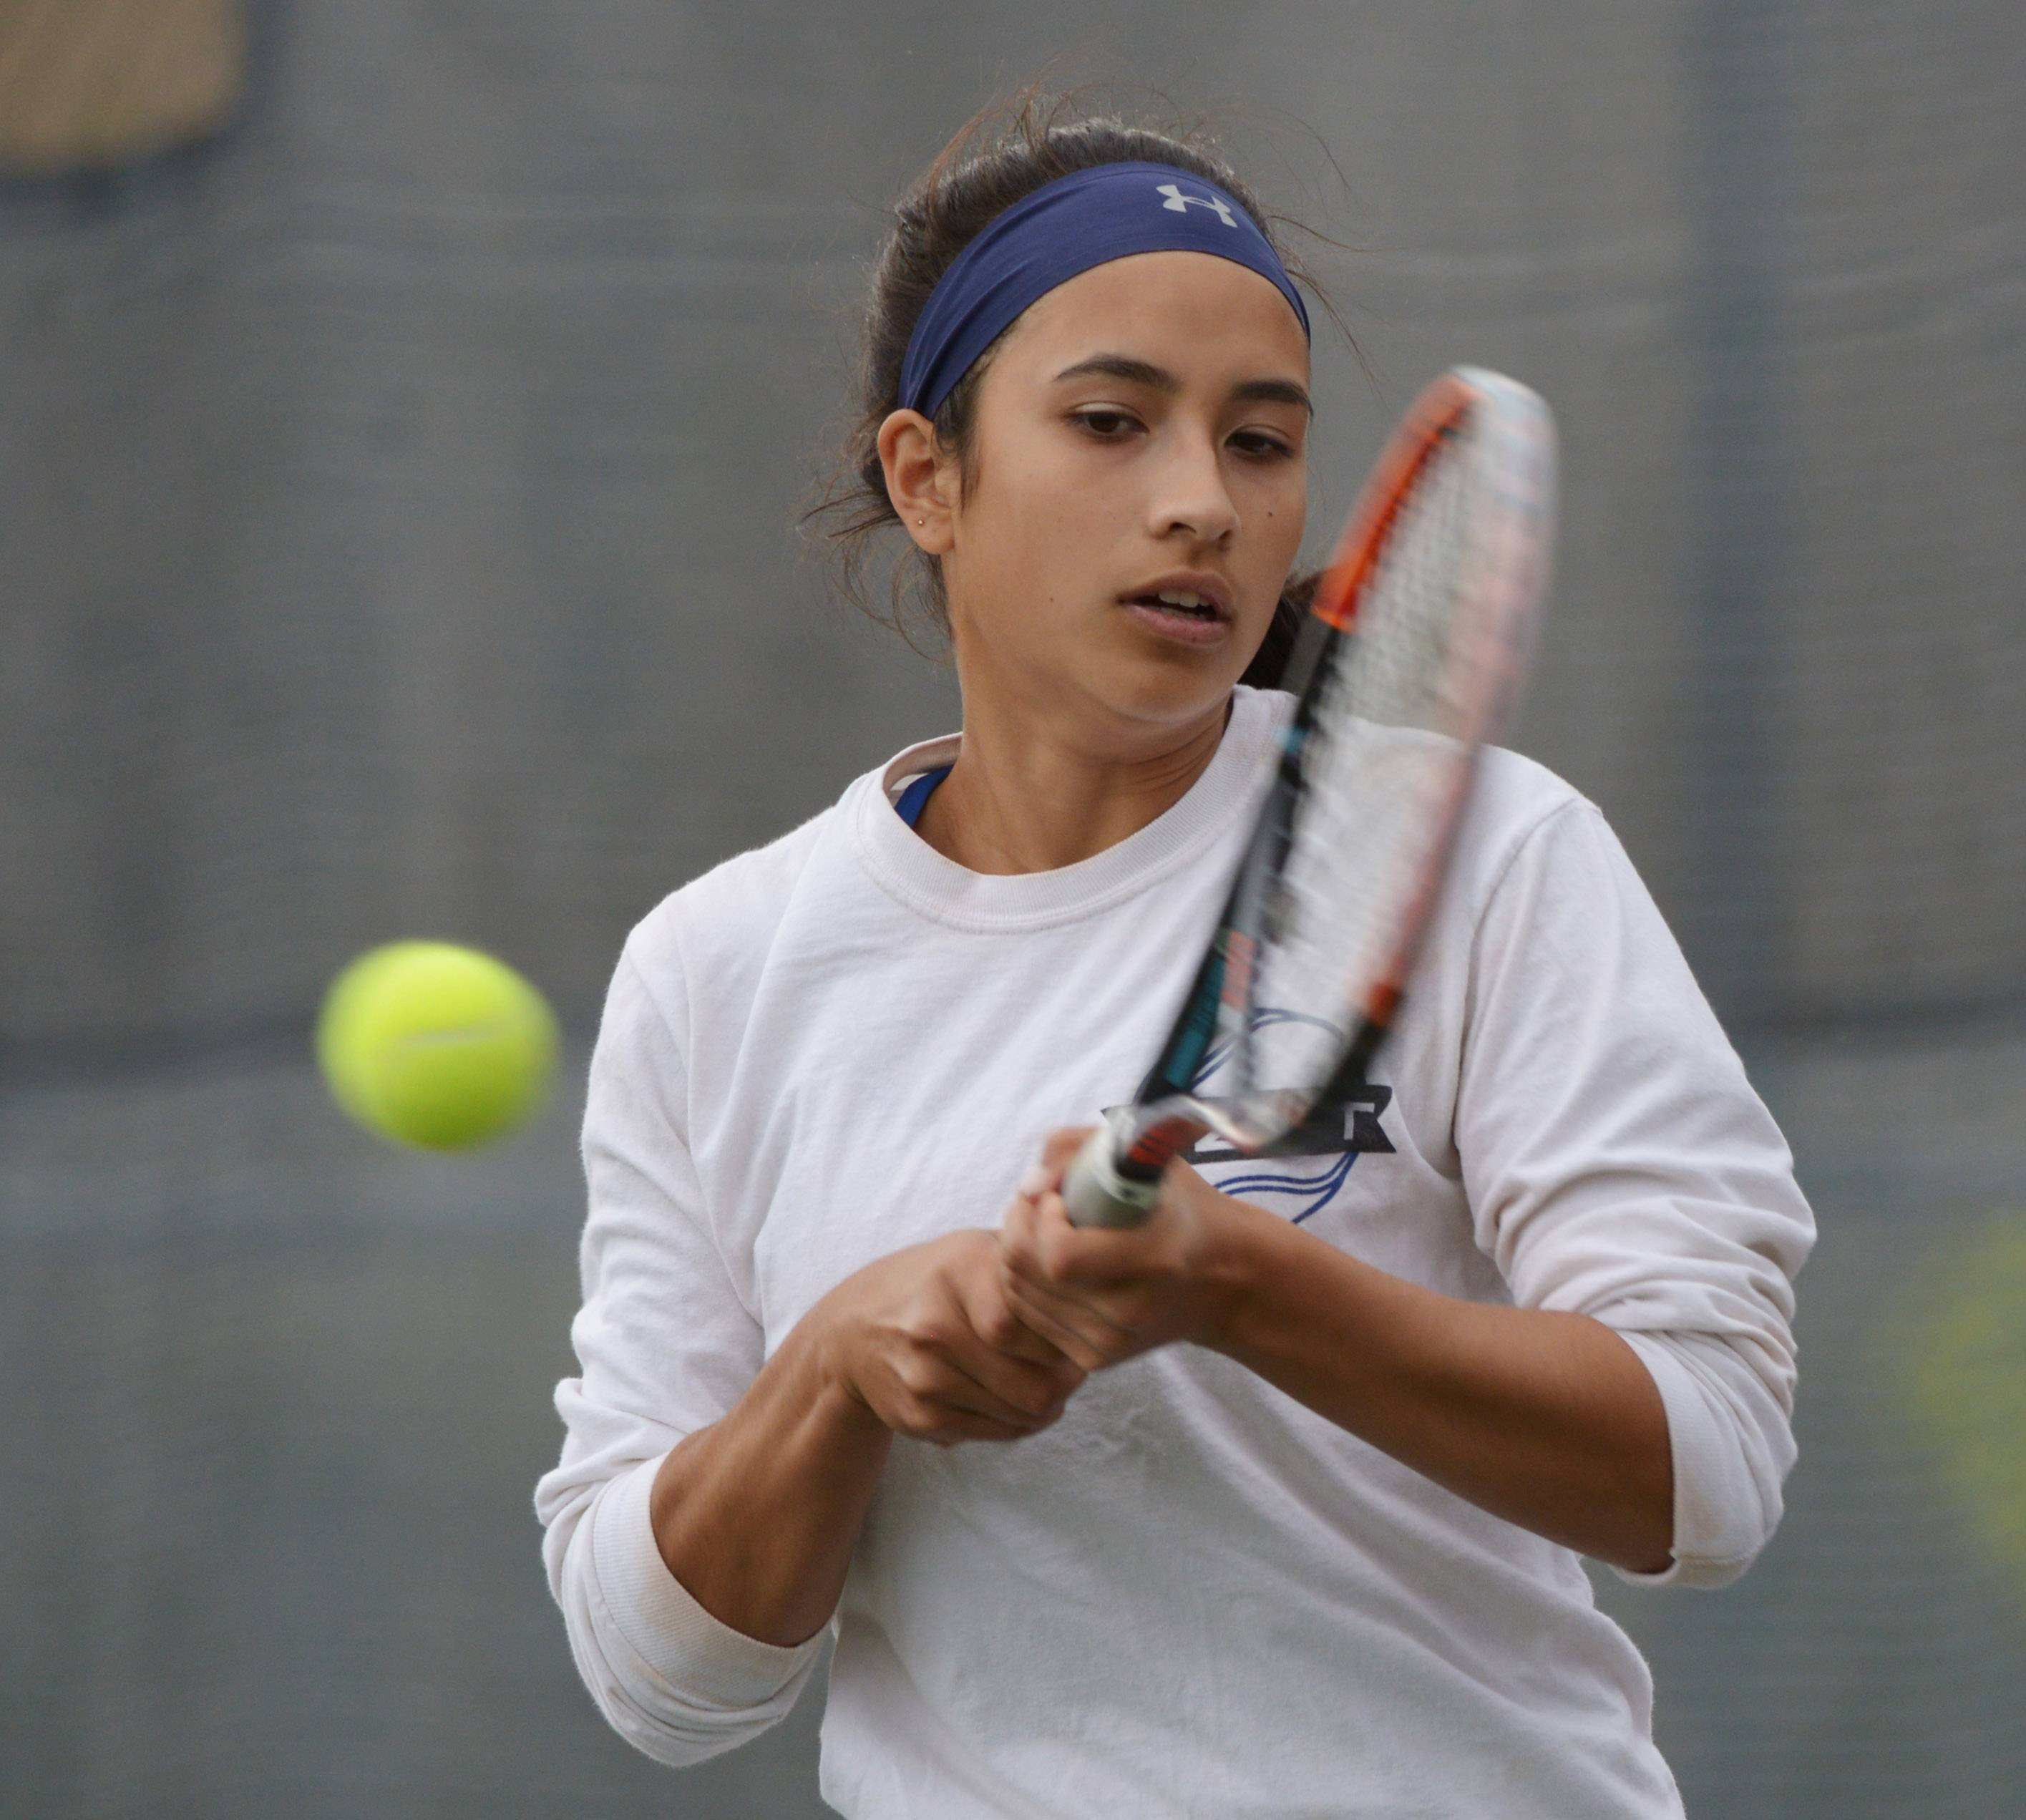 Lake Zurich first singles player Sophia de los Reyes returns the ball during a match with Rolling Meadows' Honor Weingart on Wednesday.